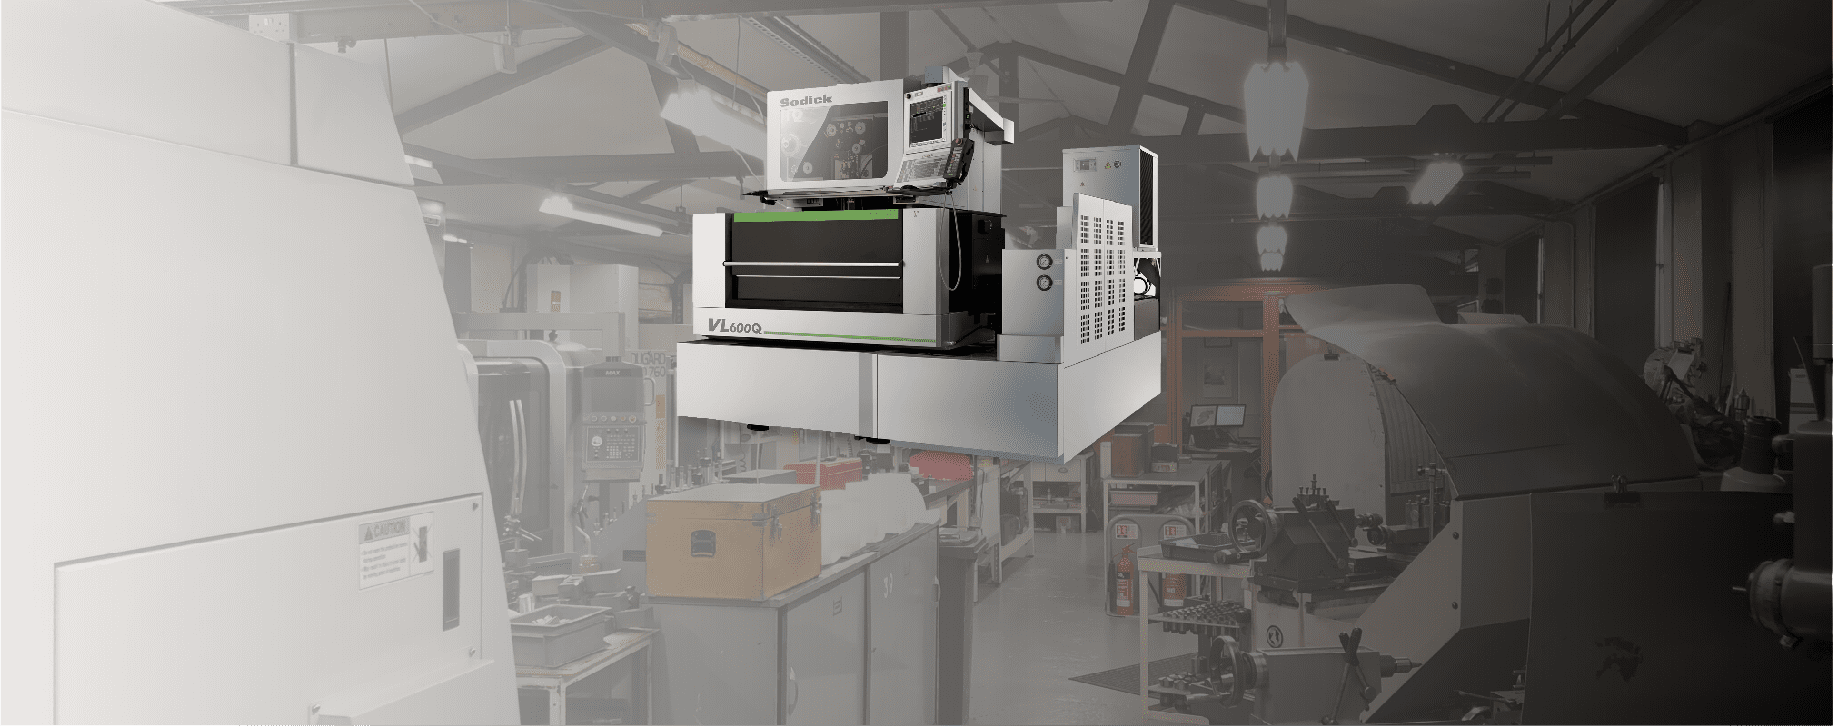 New Purchase & Capability: Sodick VL600Q Wire EDM